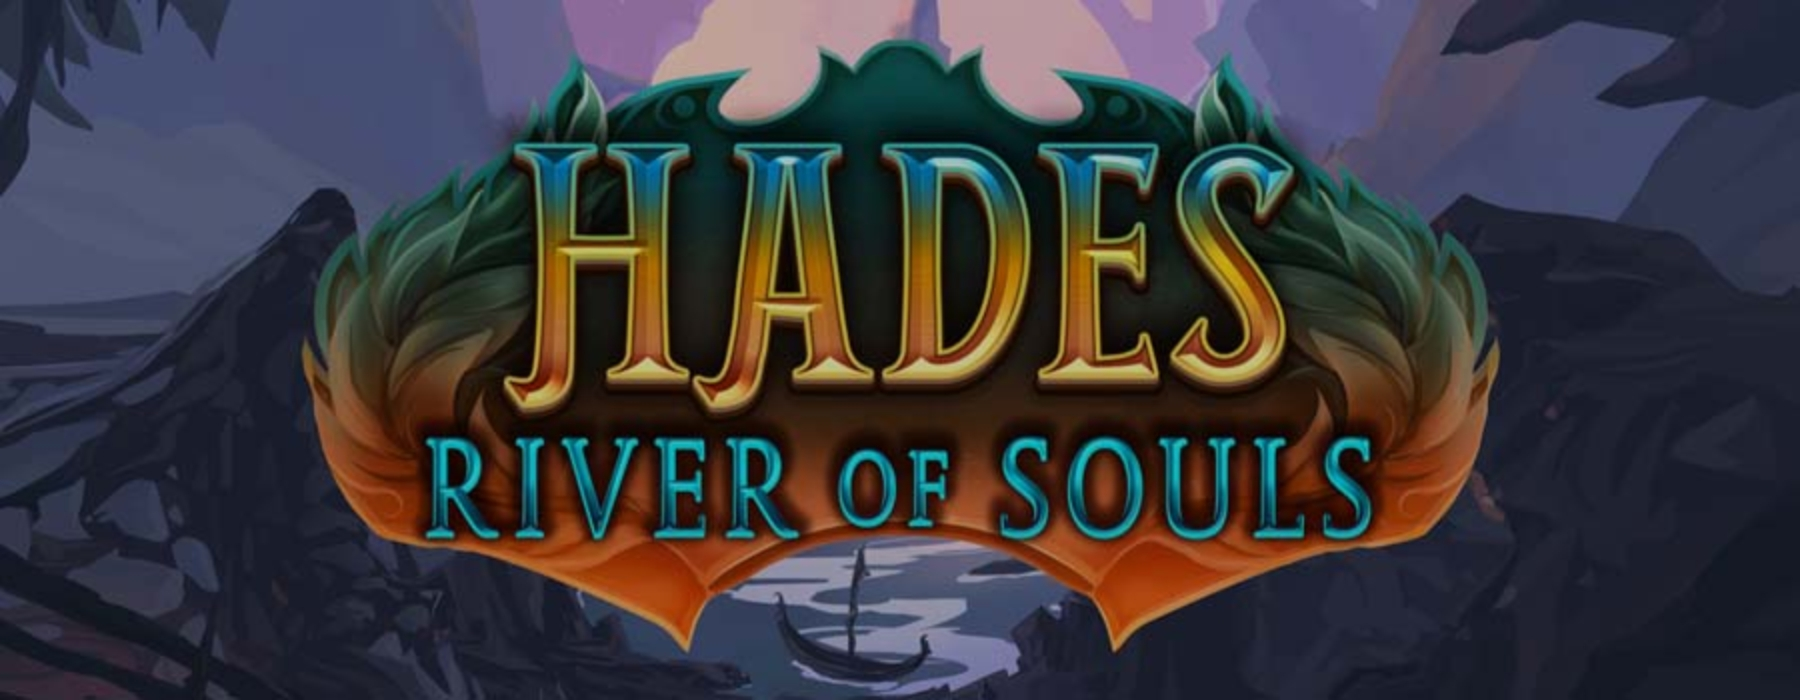 The Hades River of Souls Online Slot Demo Game by Fantasma Games